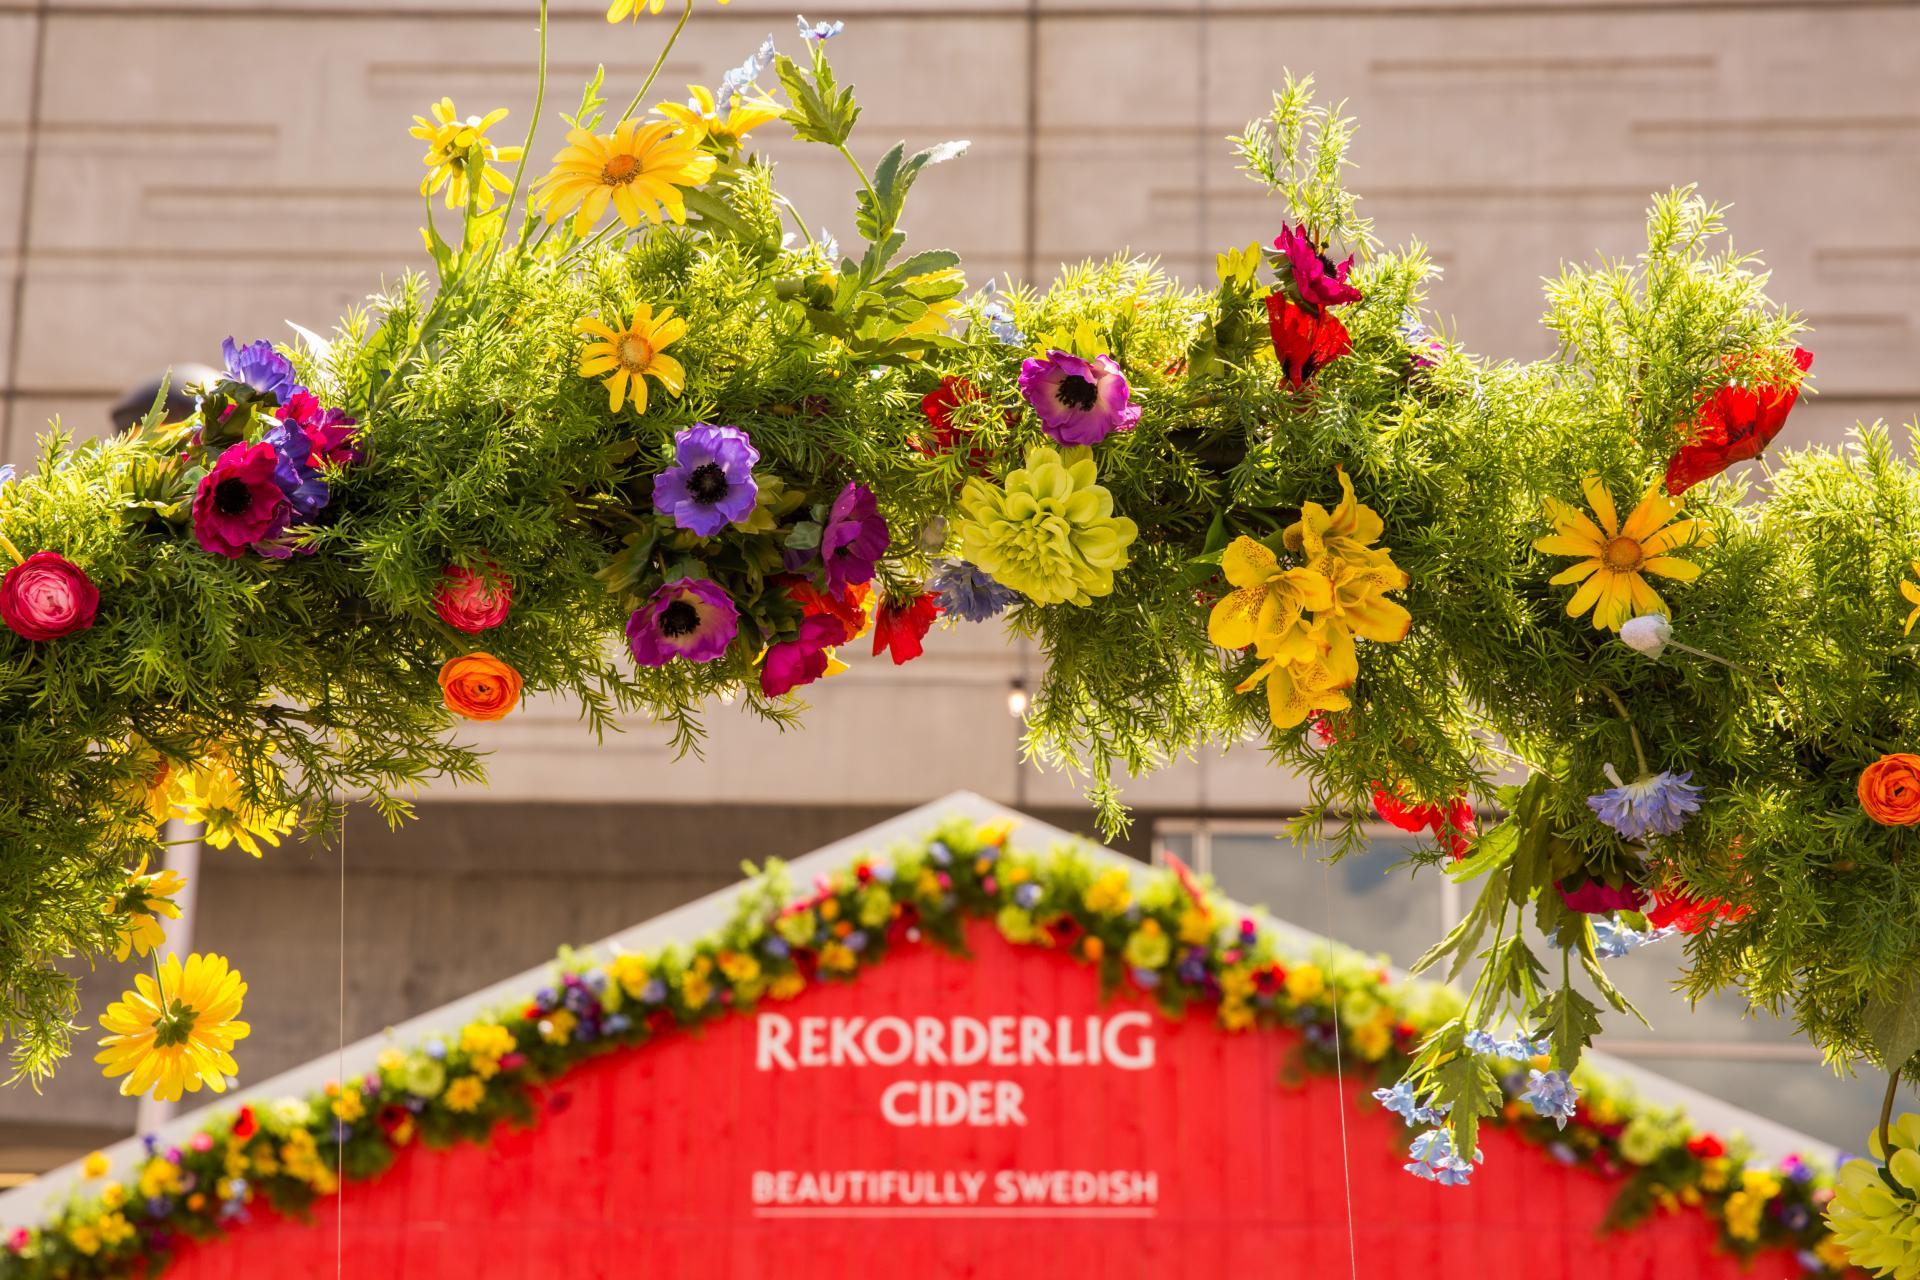 Start The Swedish Way with Rekorderlig Cider